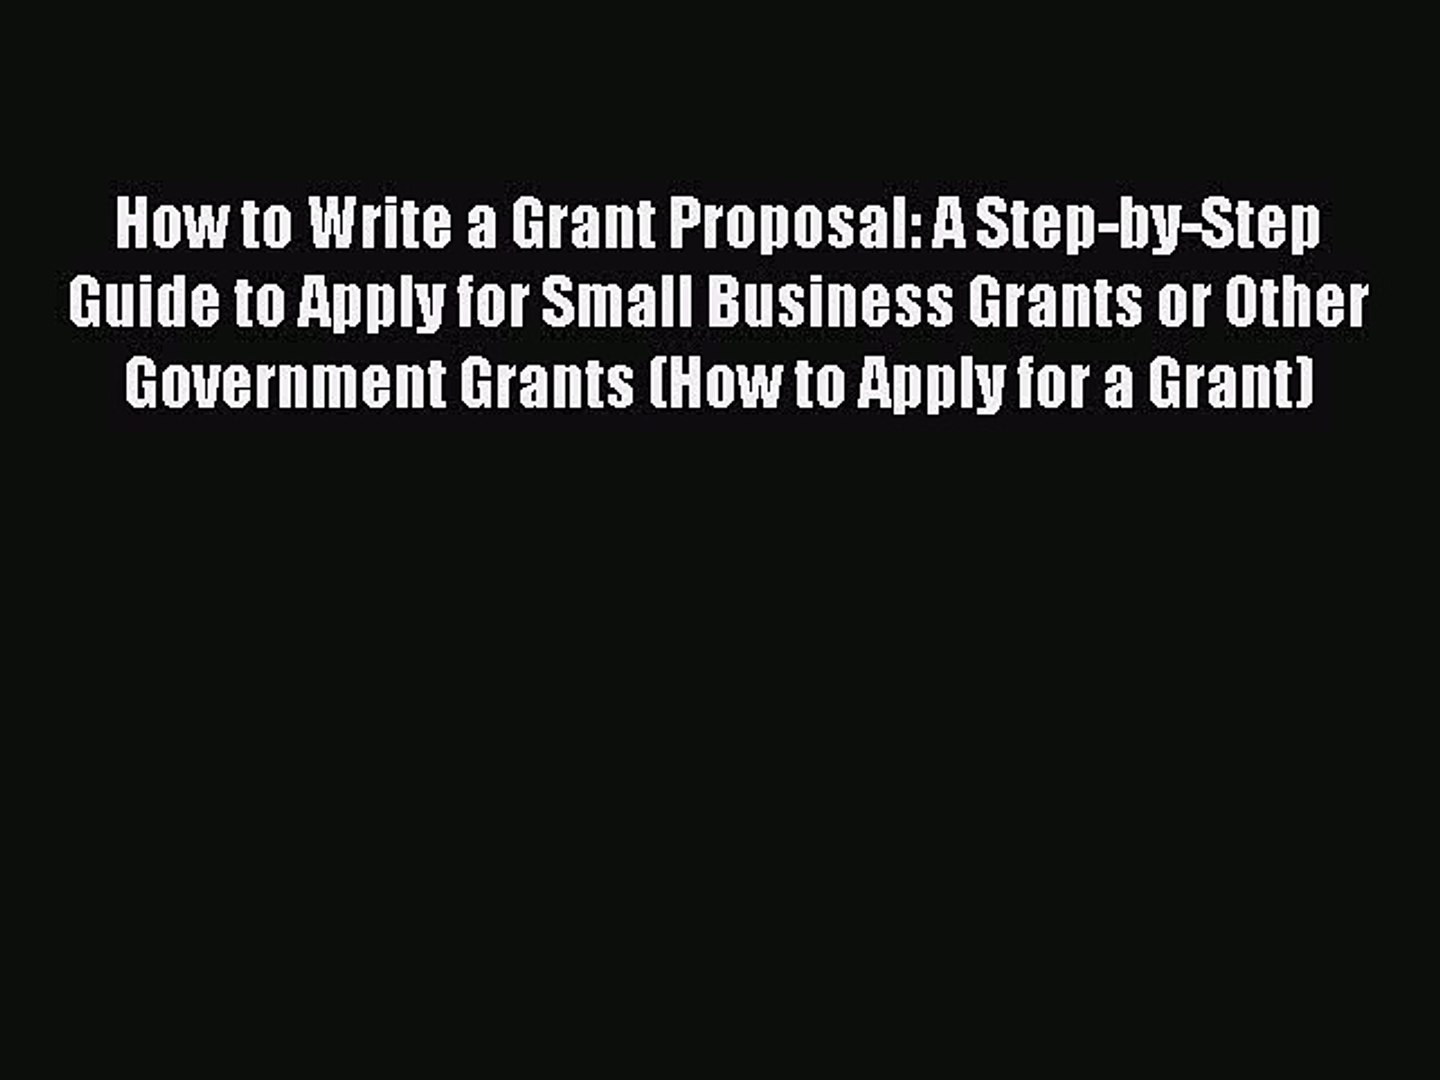 [PDF] How to Write a Grant Proposal: A Step-by-Step Guide to Apply for Small Business Grants